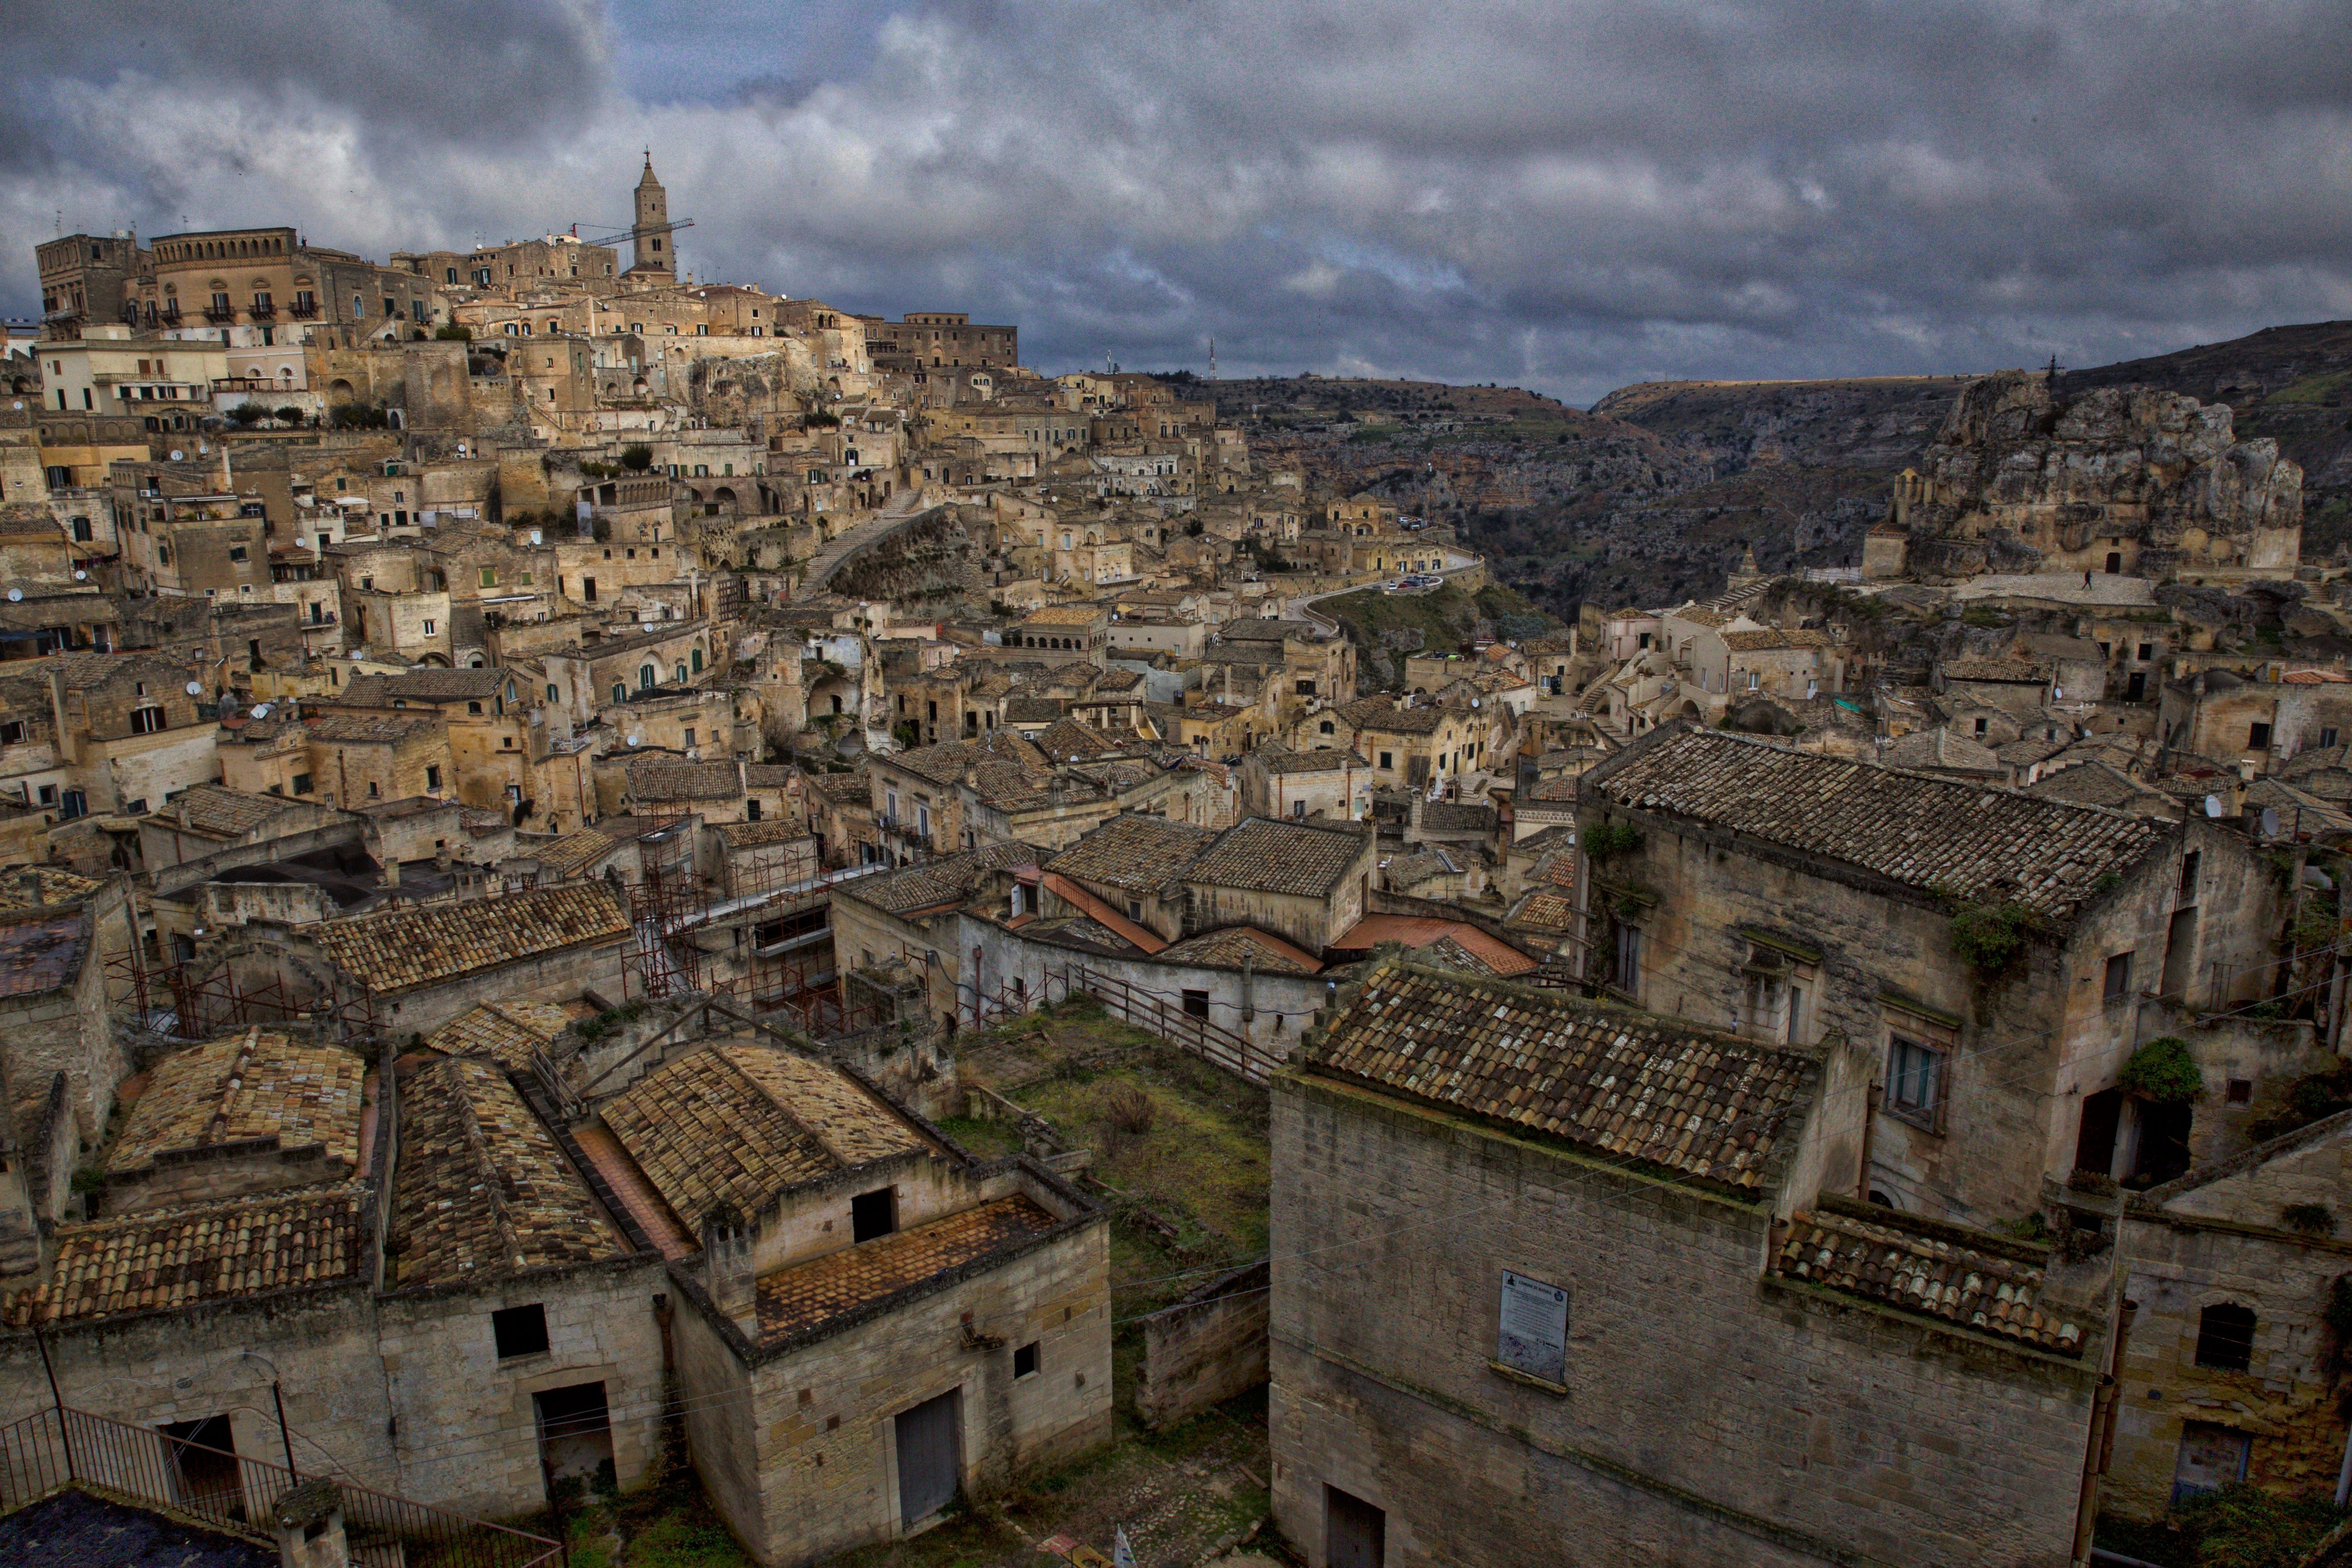 The incredible UNESCO World Heritage Site of Matera is one